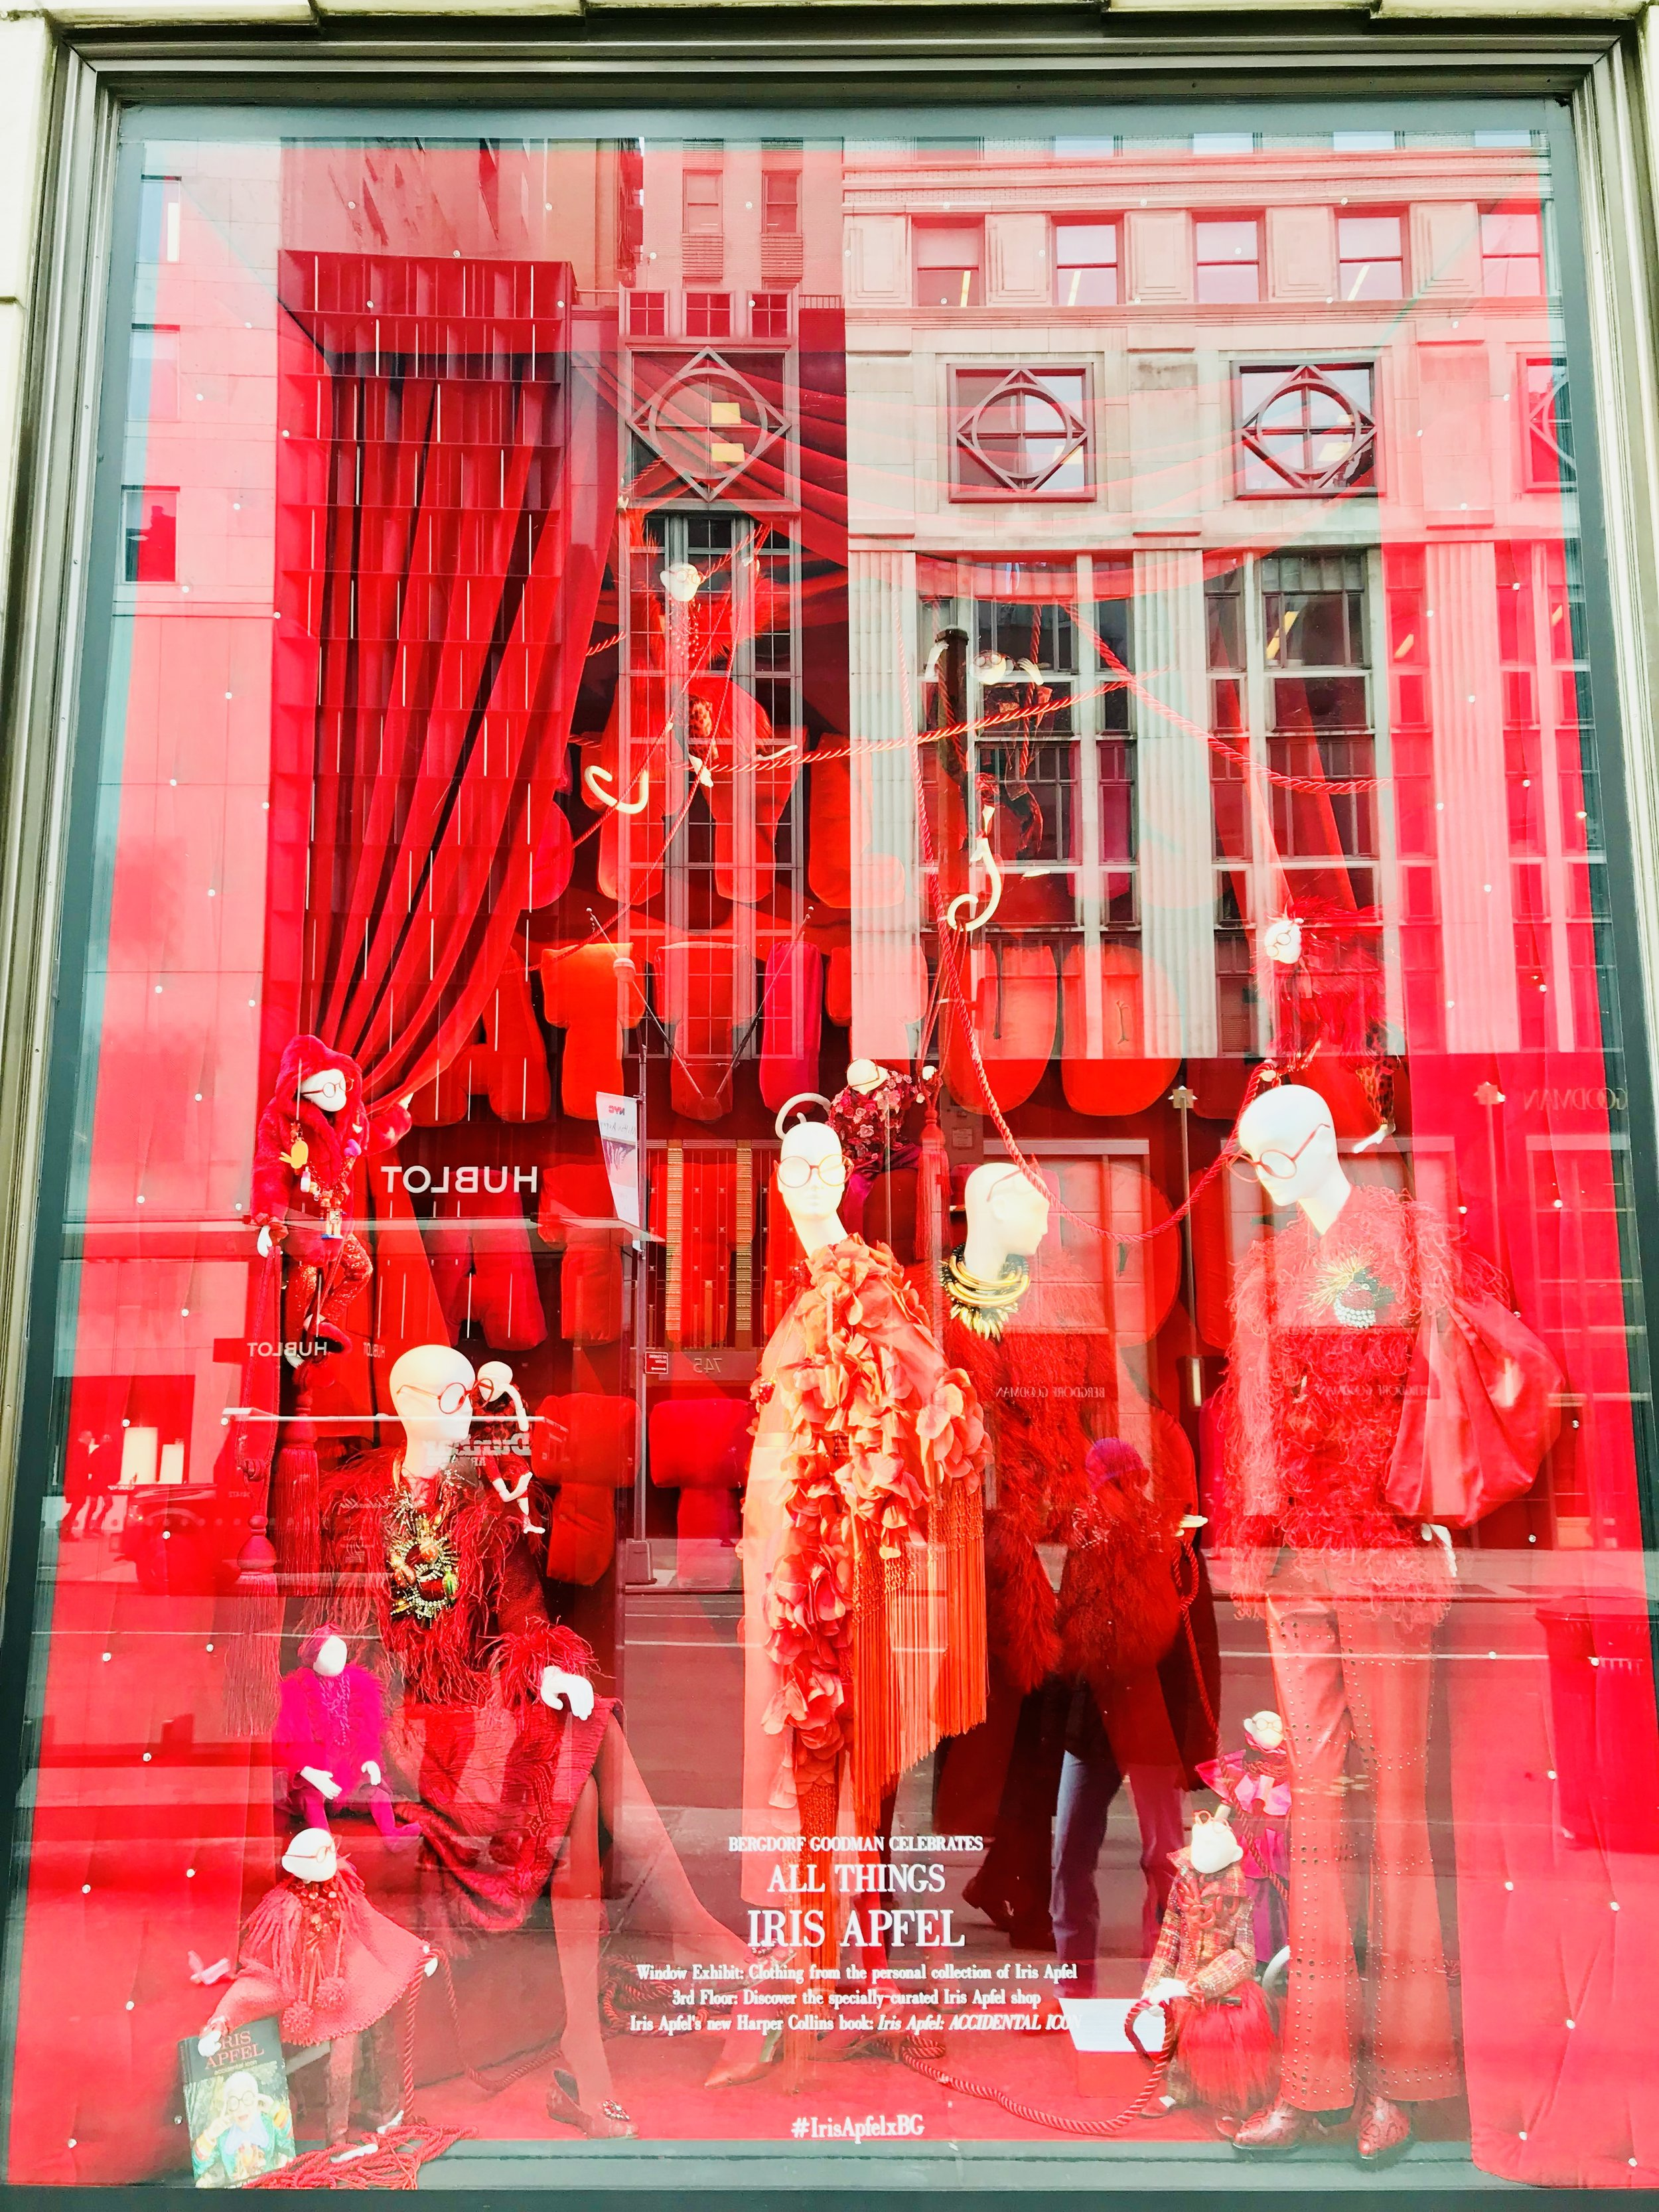 """syle is attitude, attitude, attitude"" windows honoring iris apfel, march 2018"